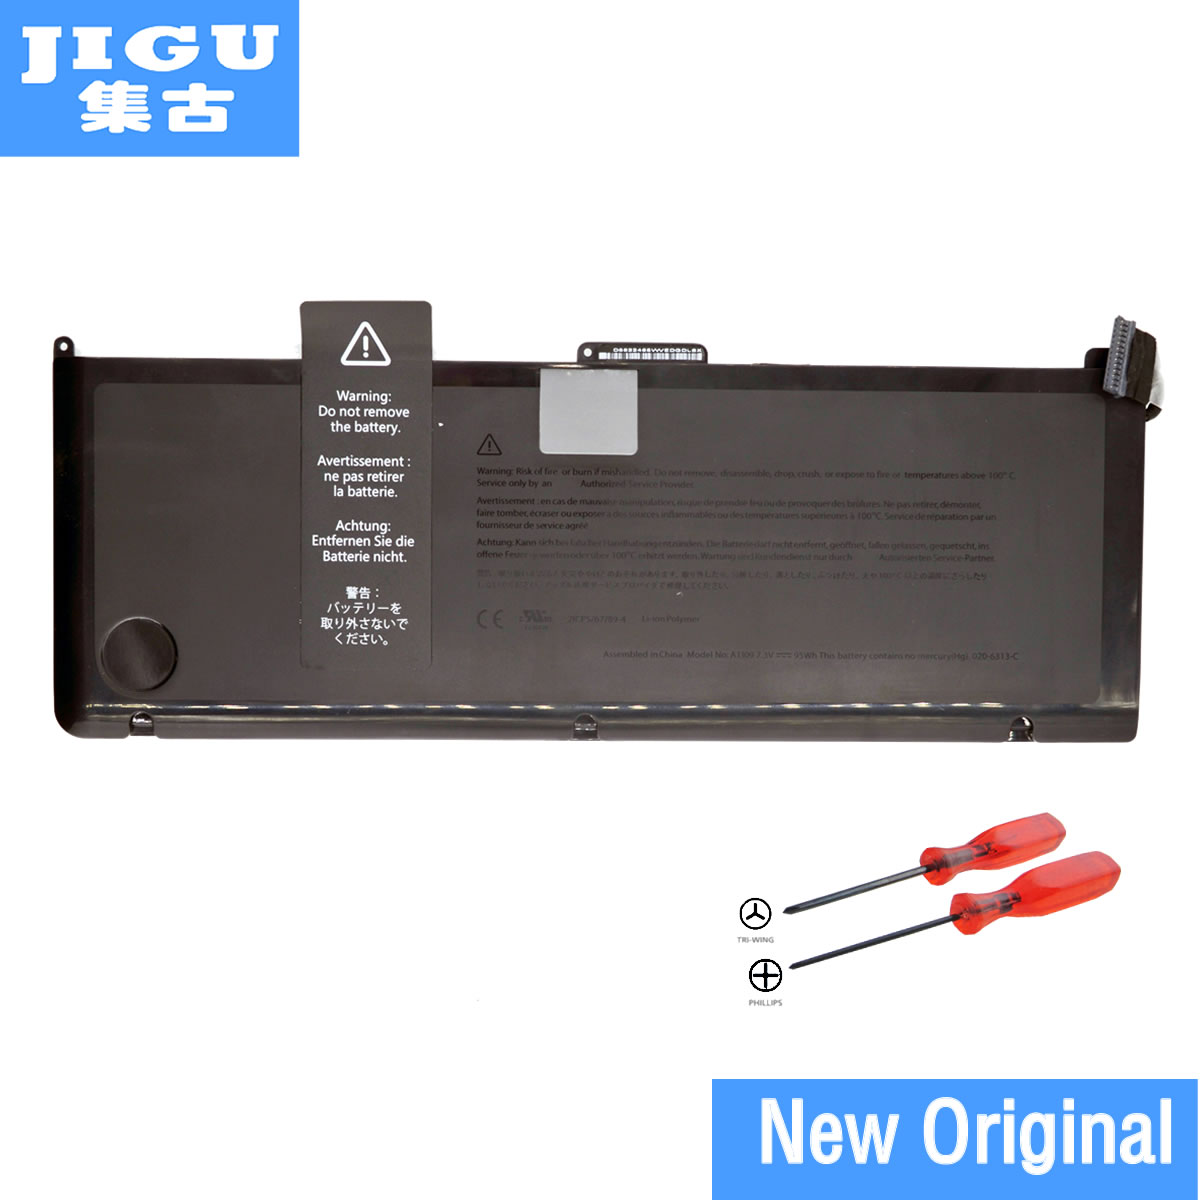 JIGU Free shipping A1309 Original Laptop Battery For APPLE MacBook Pro 17 A1297  [2009 Production] MC226*/A MC226CH/A 95WH free shipping a1417 original laptop battery for apple retina a1398 mc975 mc976 me664 me665 10 95v 95wh